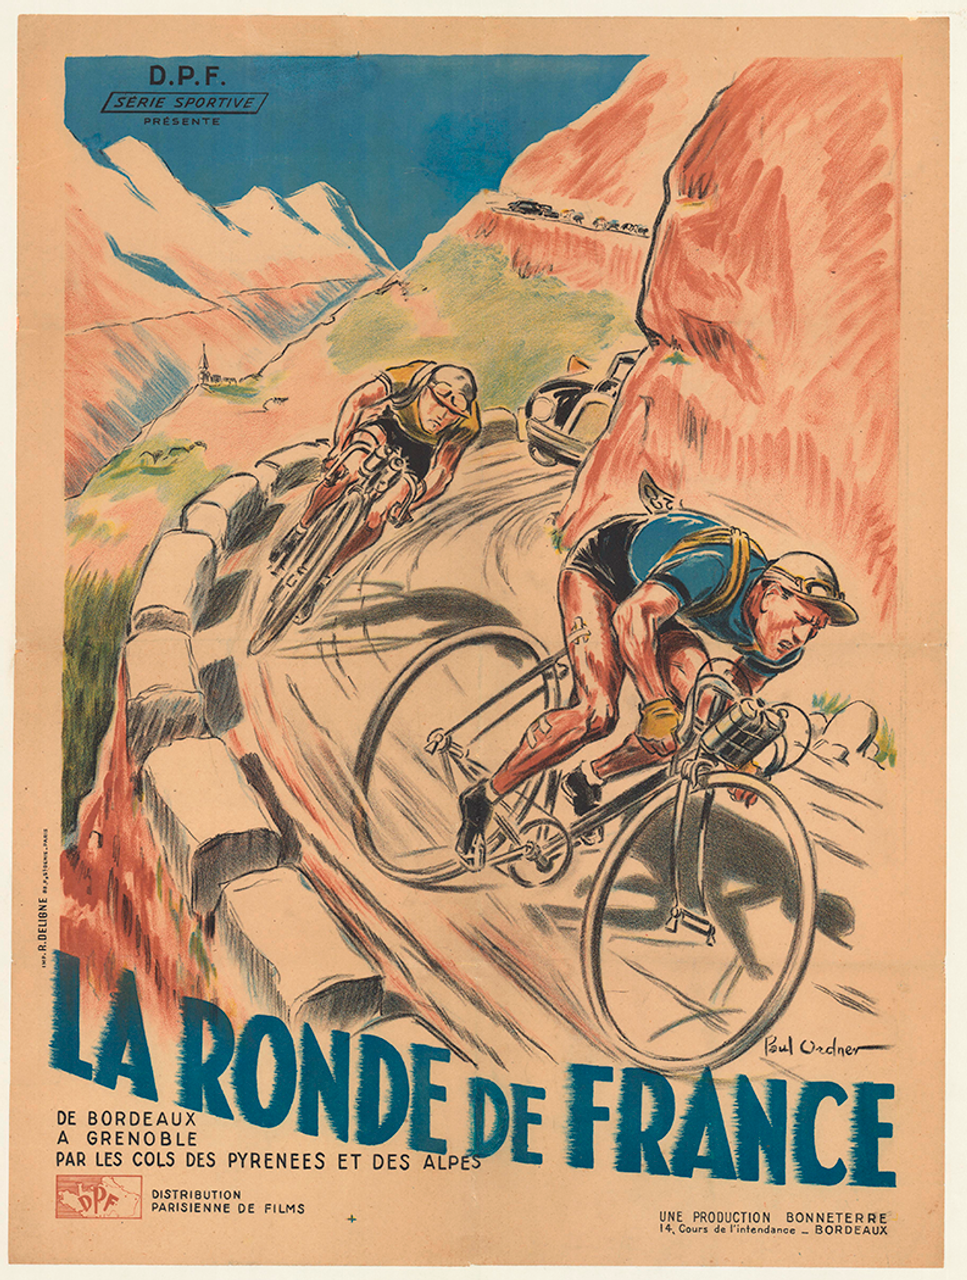 La Ronde de France Vintage Bicycle Poster by Paul Ordner